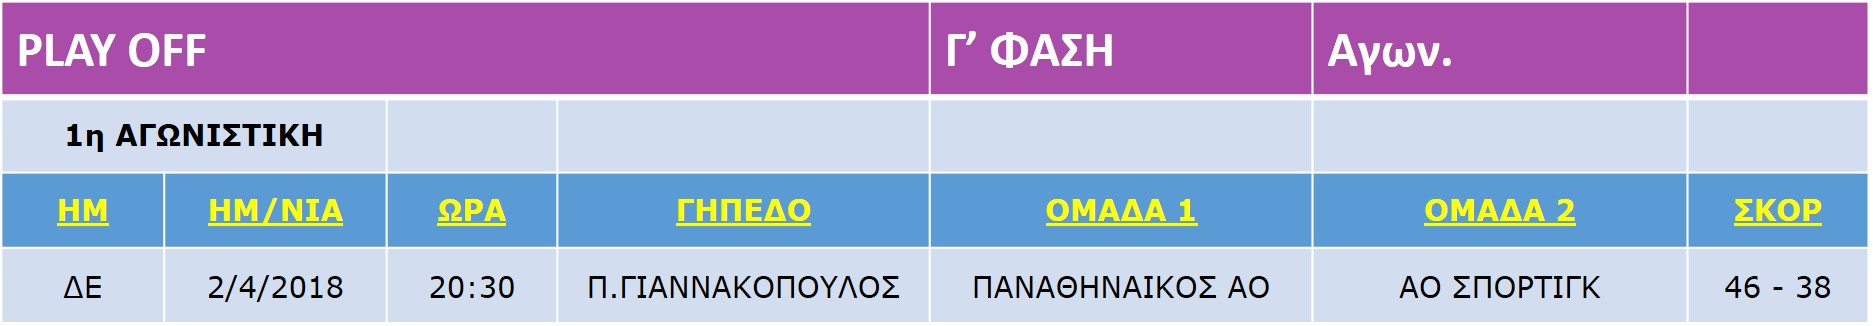 Neanides_Match_Play-OffC